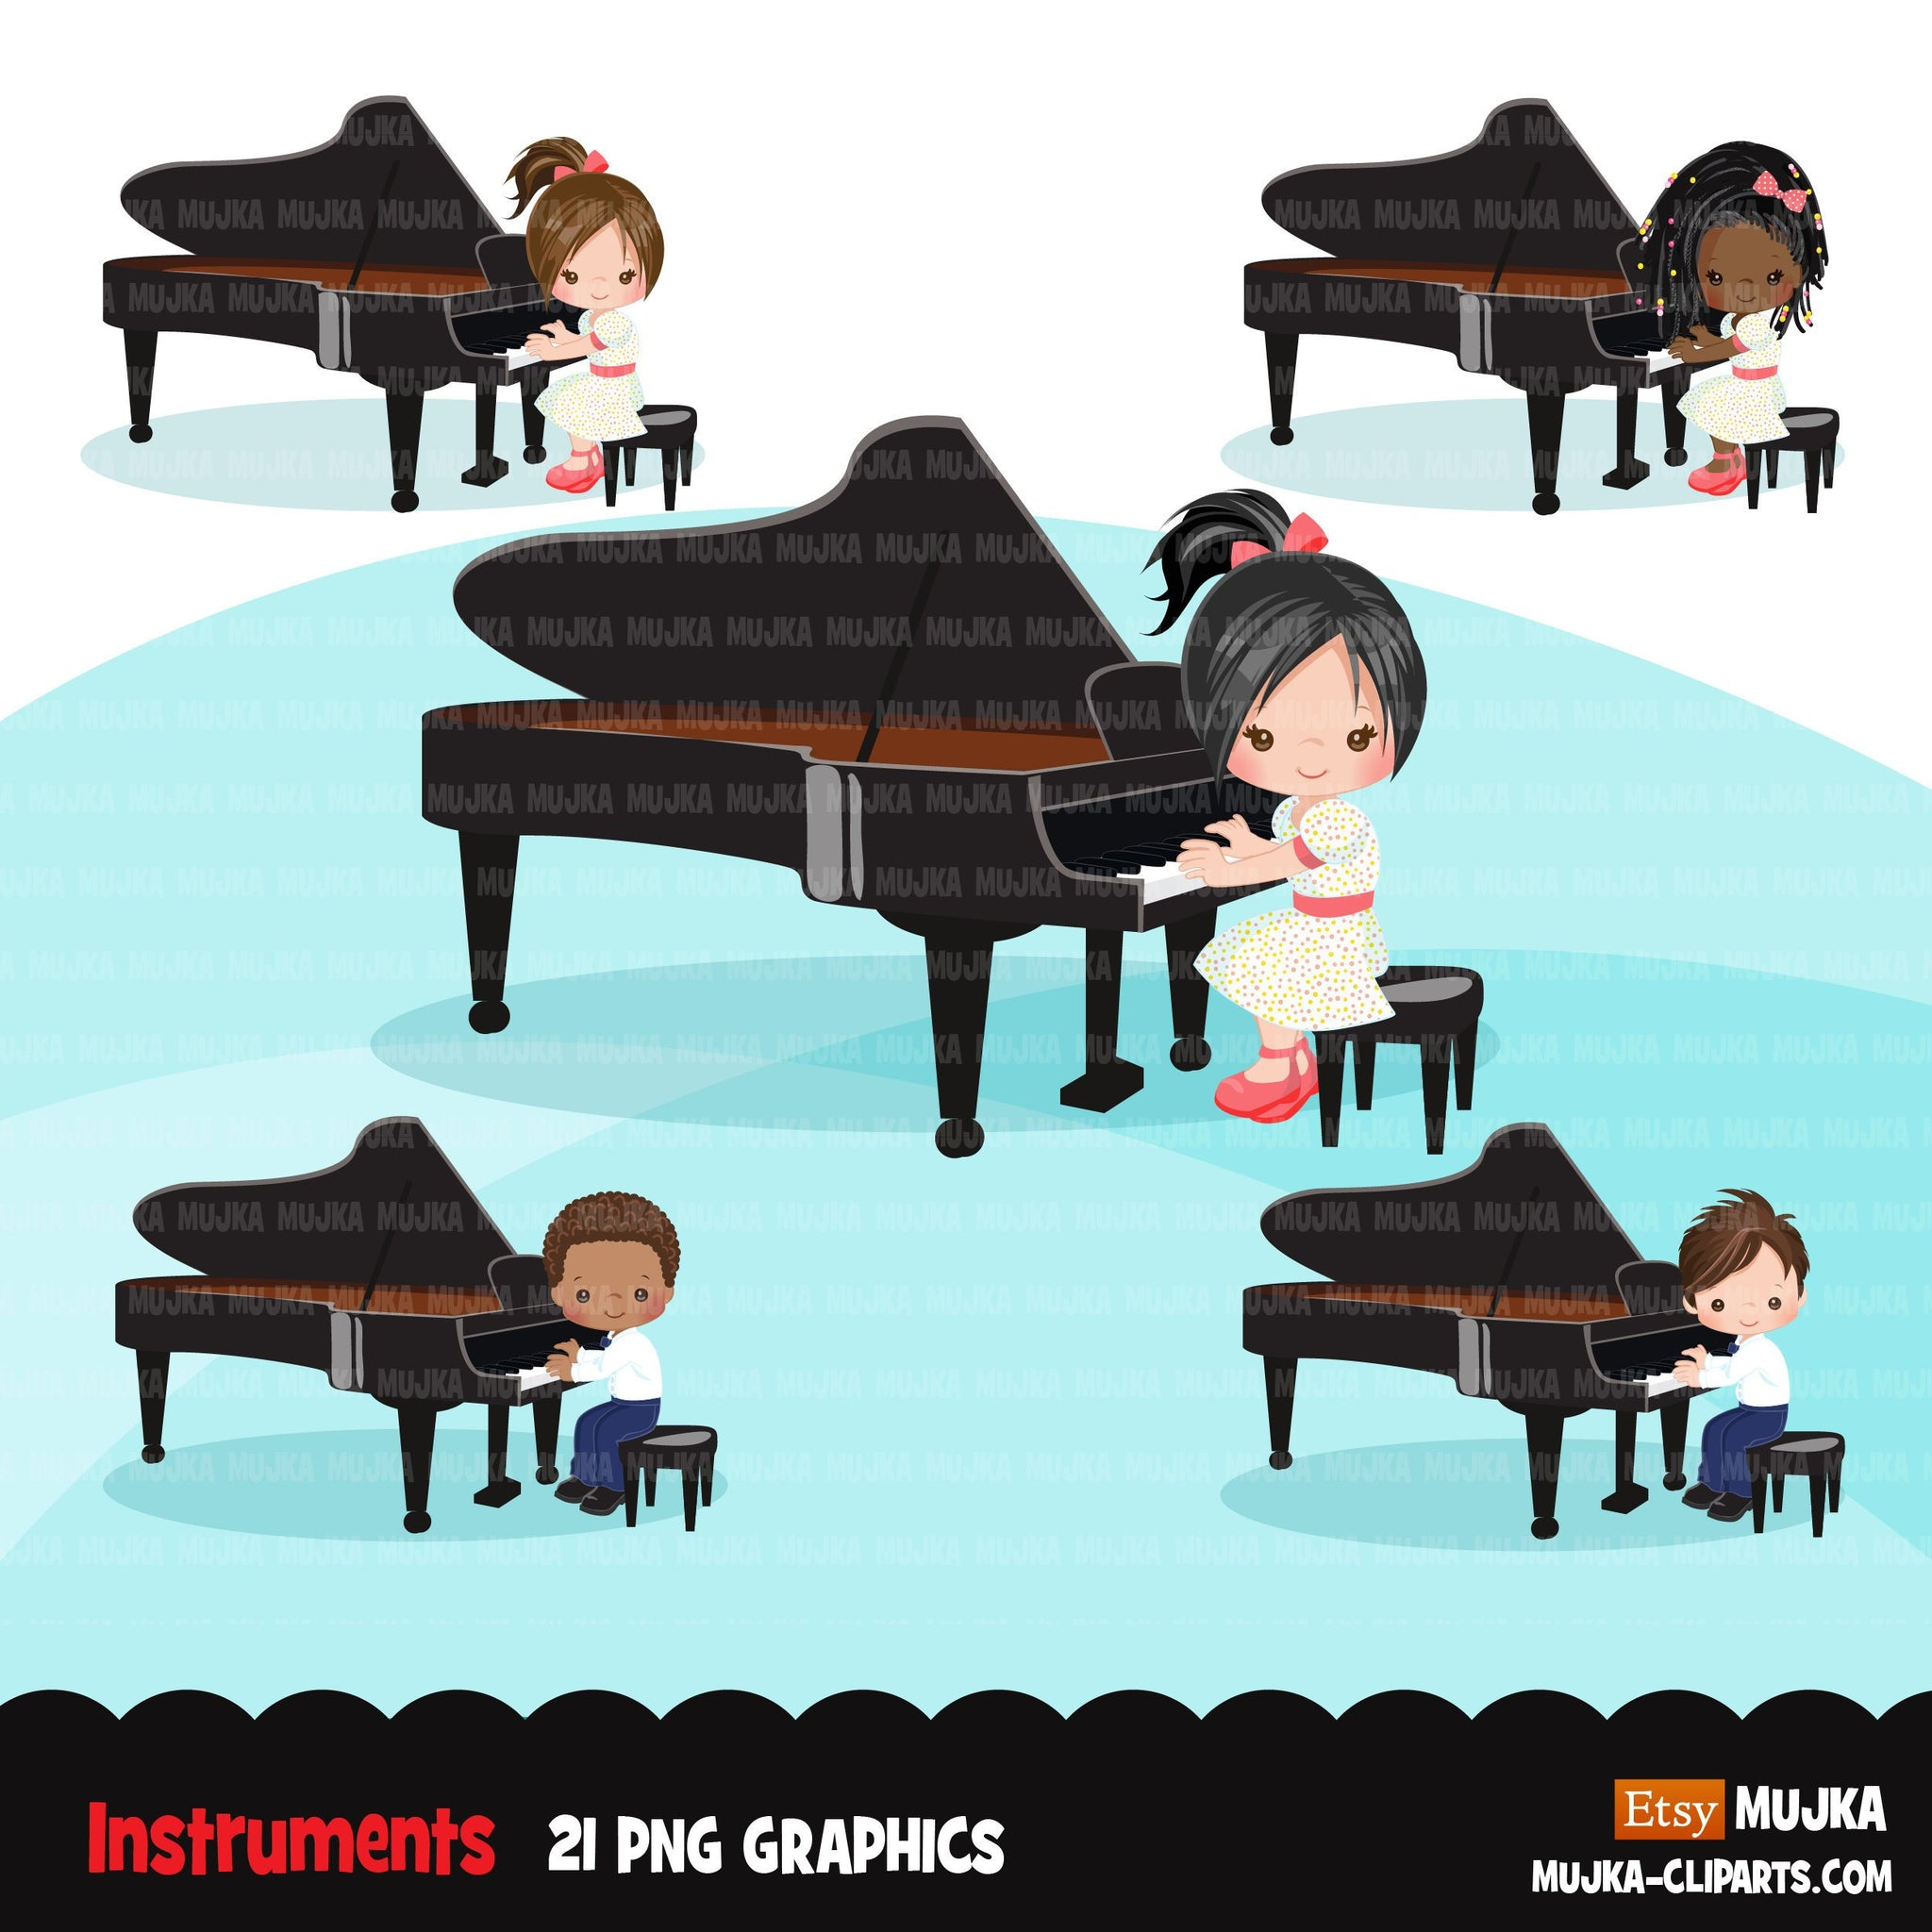 Piano clipart, Music Instruments clipart, education graphics, school band, recital, musician sublimation graphics, PNG clip art